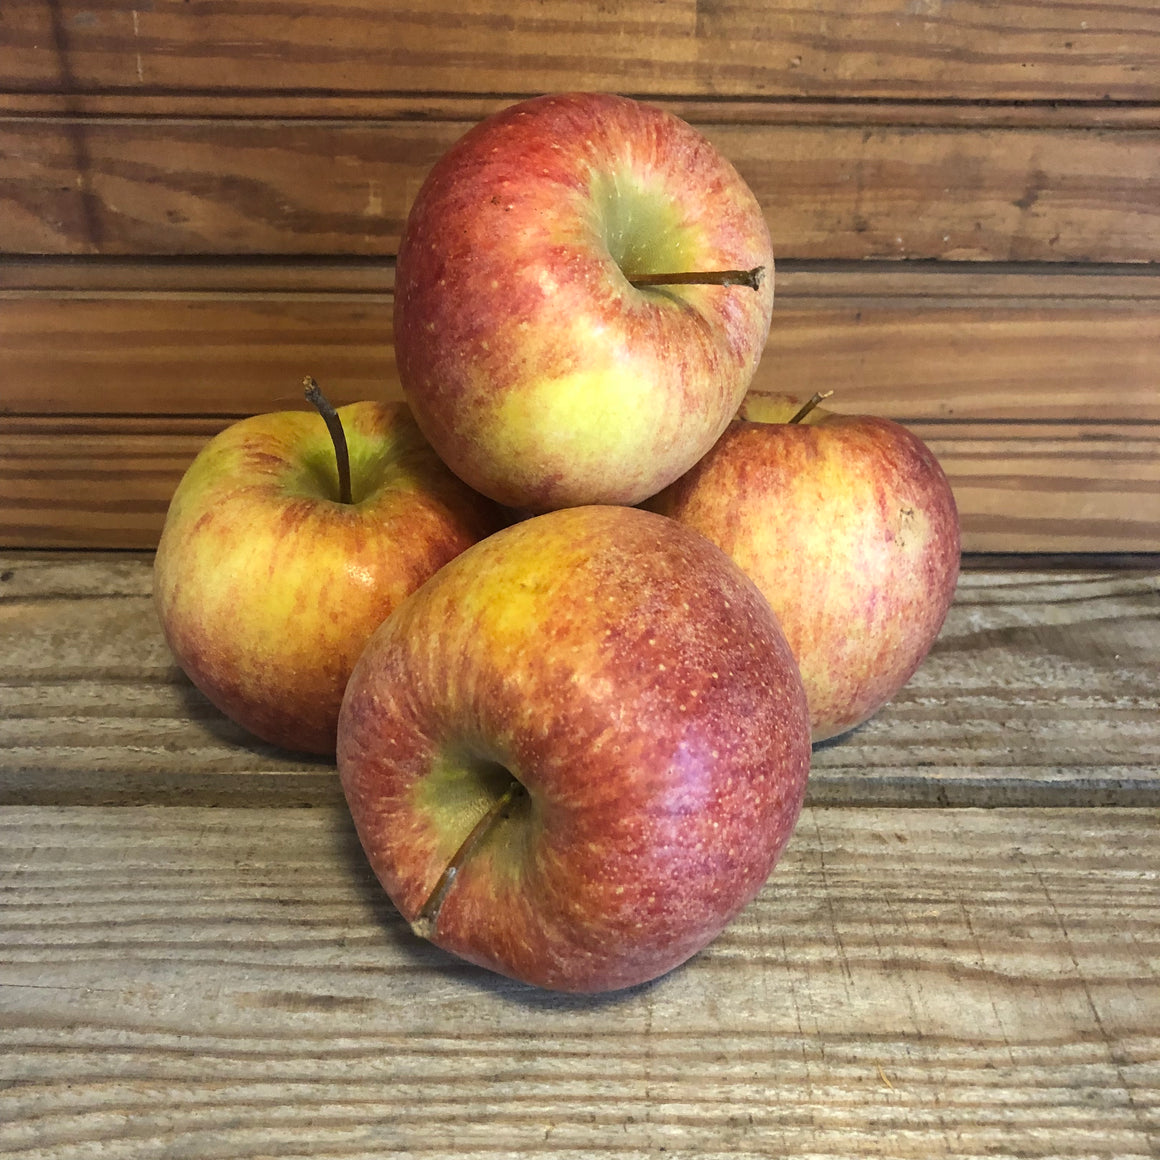 Produce - Cameo Apples - Frank's Produce